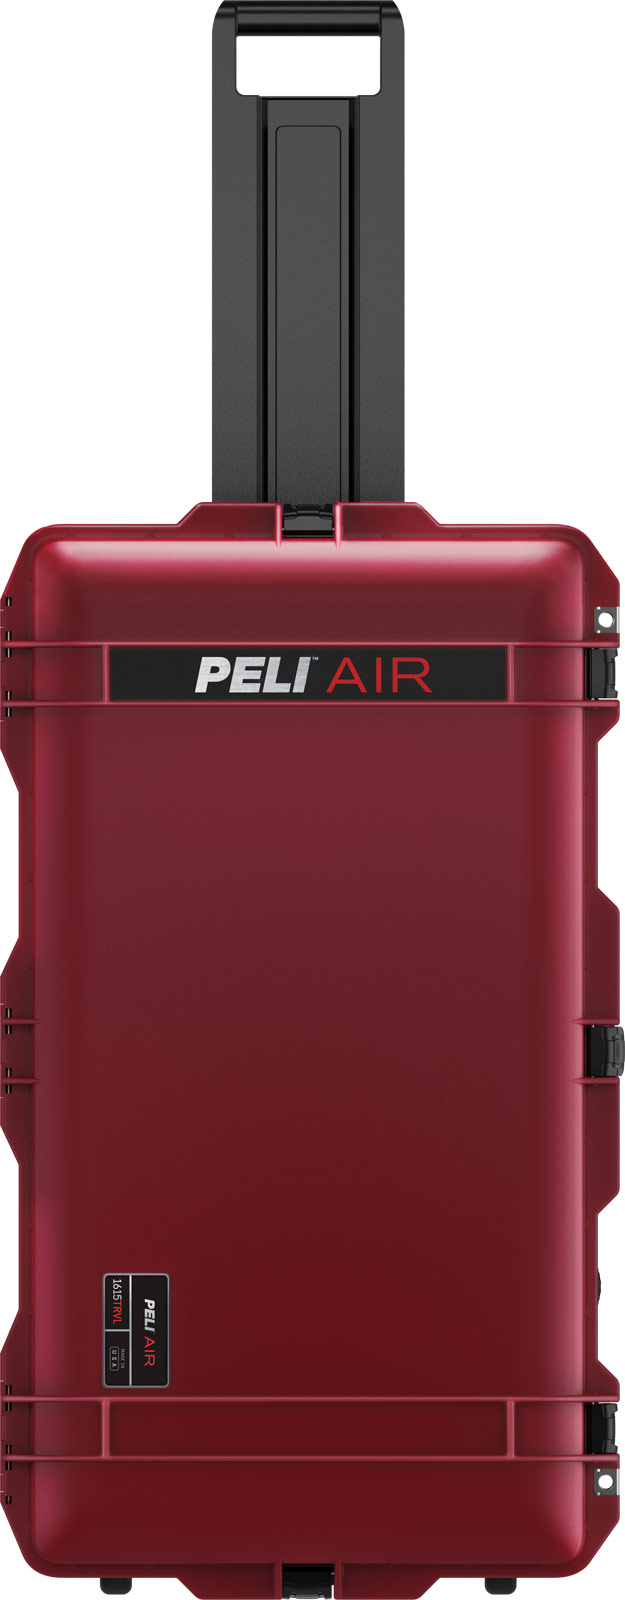 peli organizational air travel case